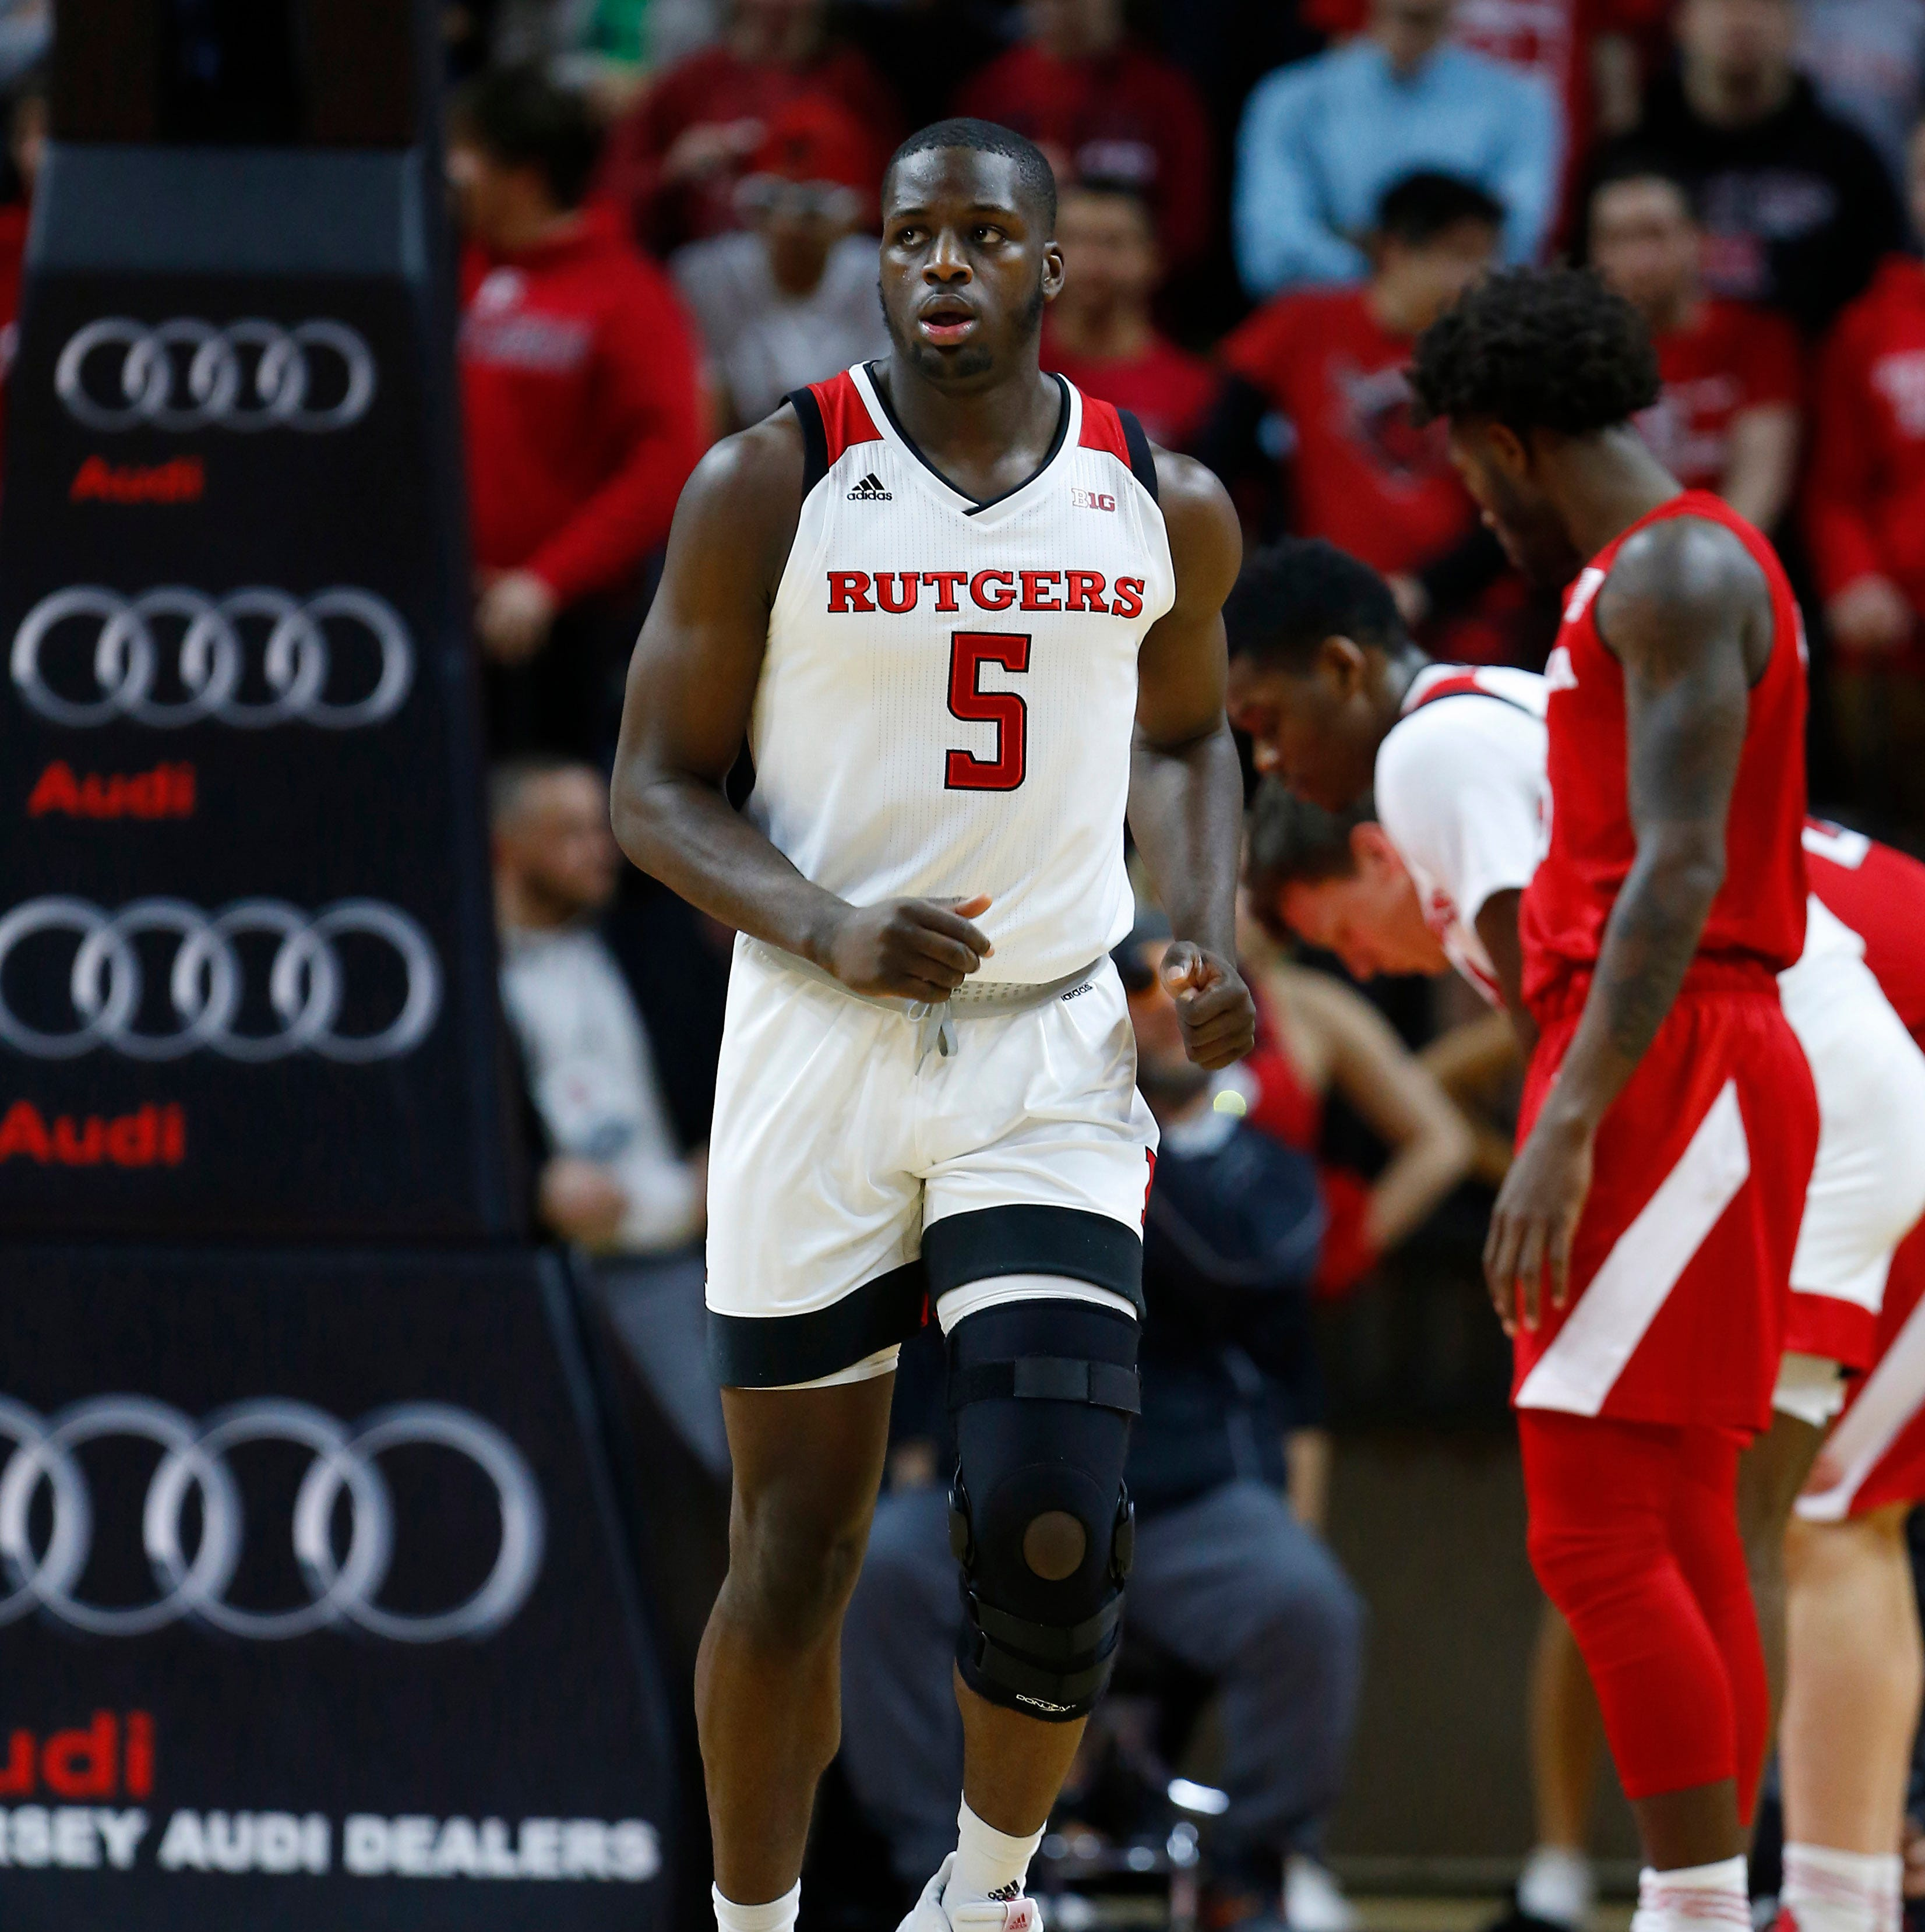 Rutgers basketball: Eugene Omoruyi returns from injury to spark upset of Nebraska